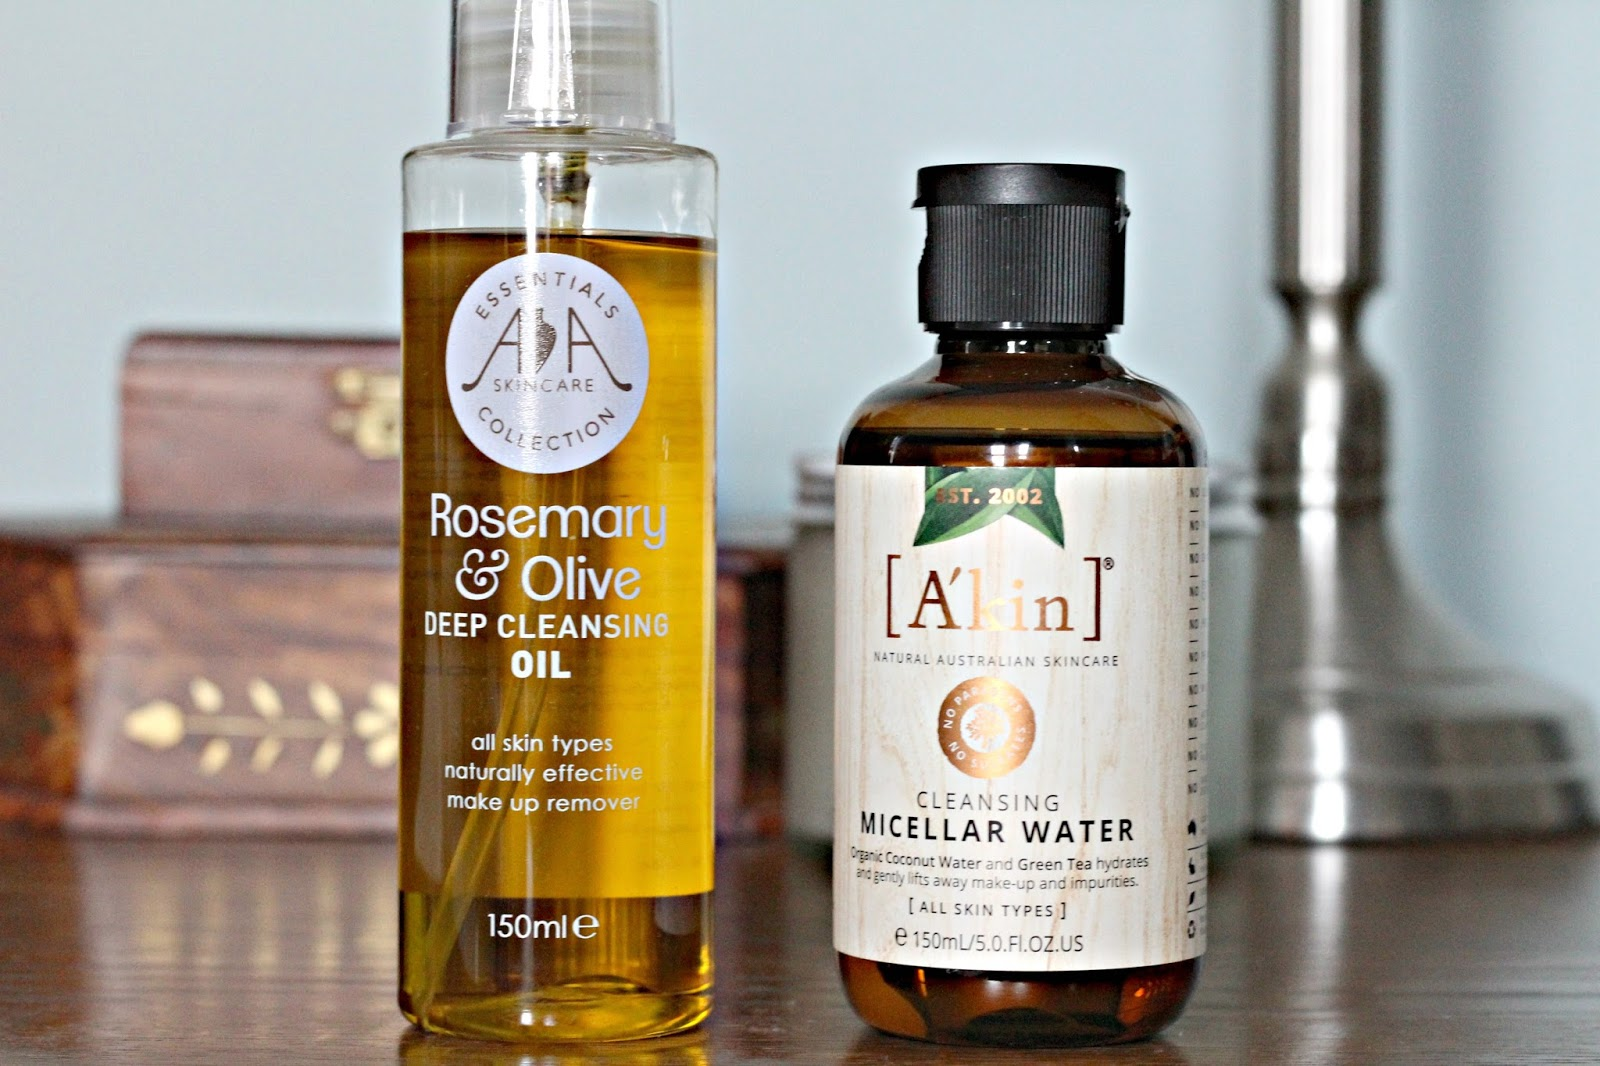 Make up removers tried and tested – AA Skincare cleansing oil and A'kin Cleansing water